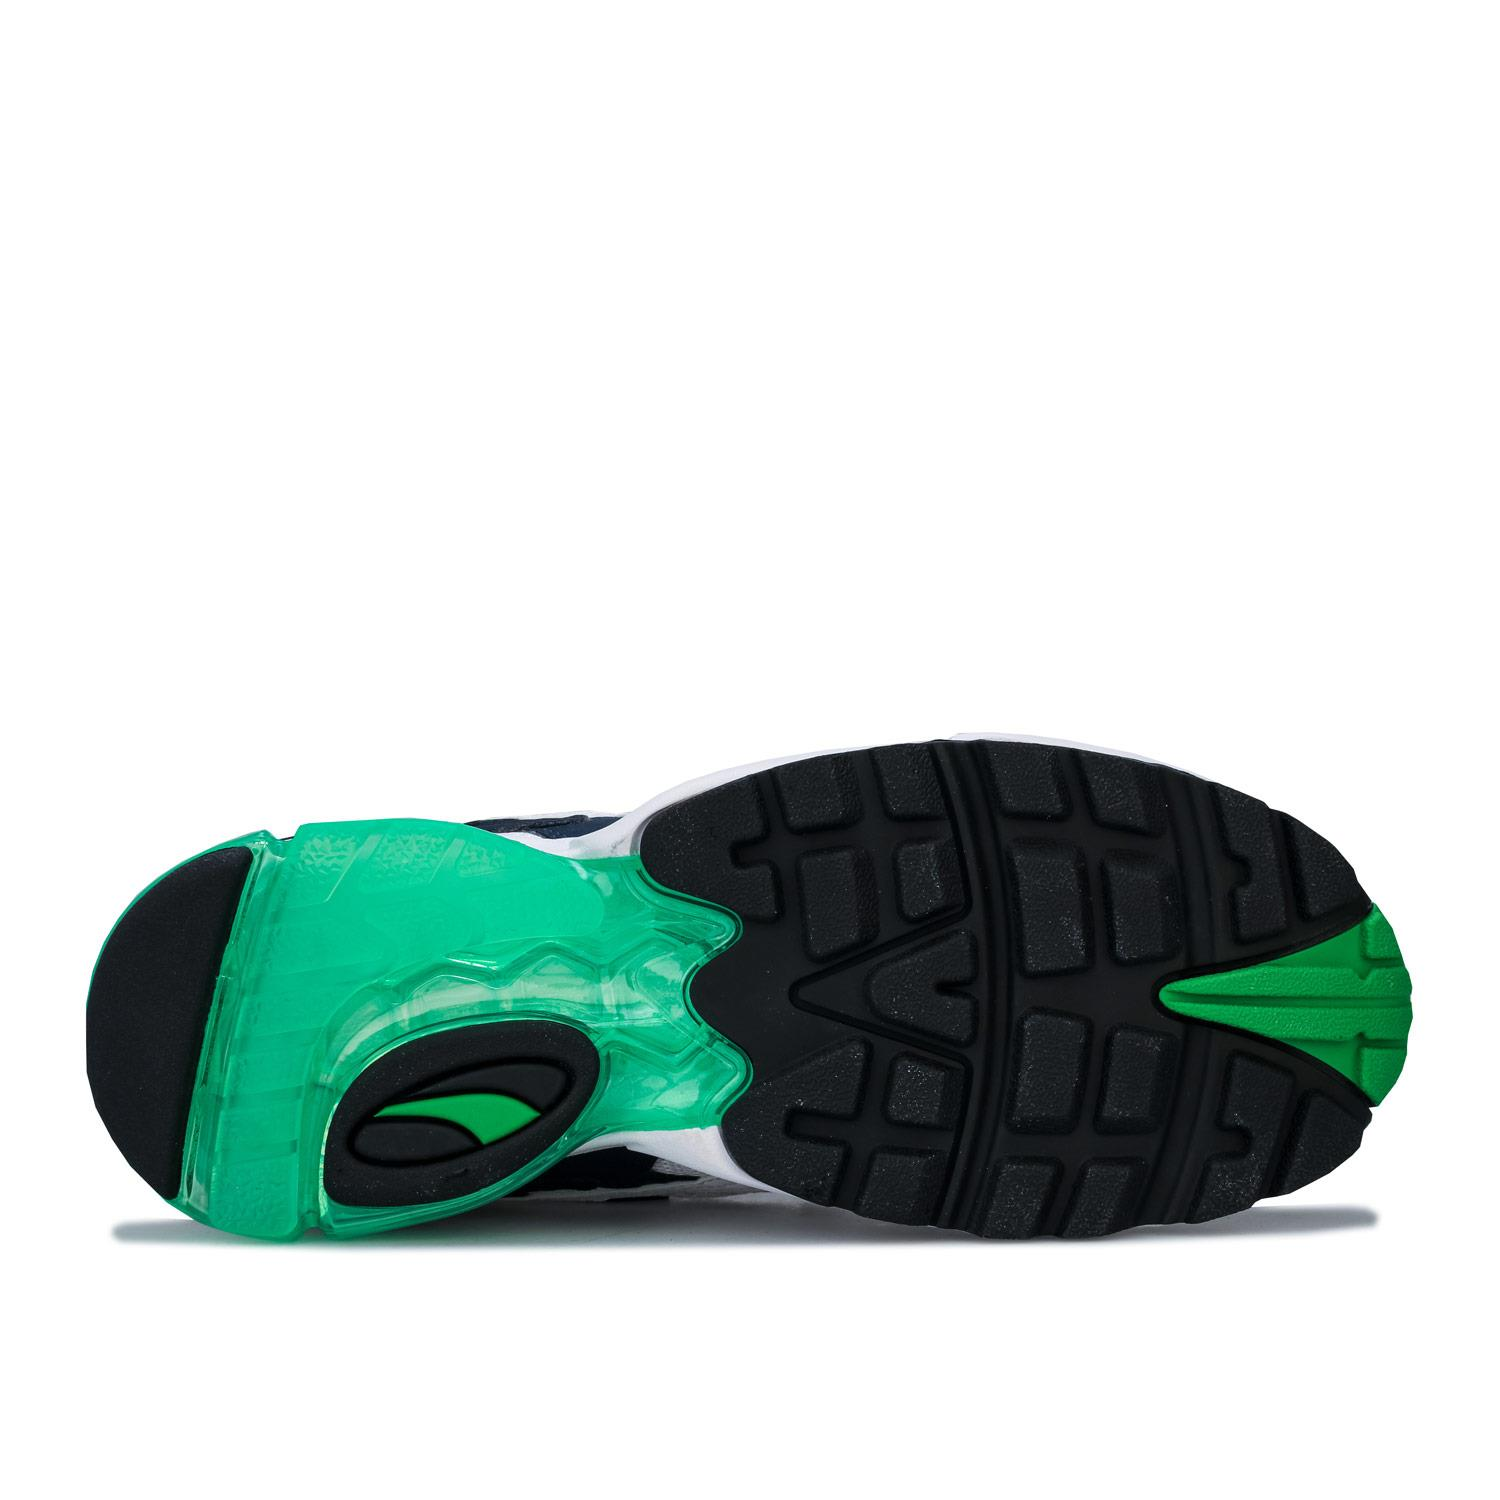 Mens-Puma-Cell-Alien-OG-Trainers-in-Blue-Green-Black-Red-Blue-and-Yellow thumbnail 17